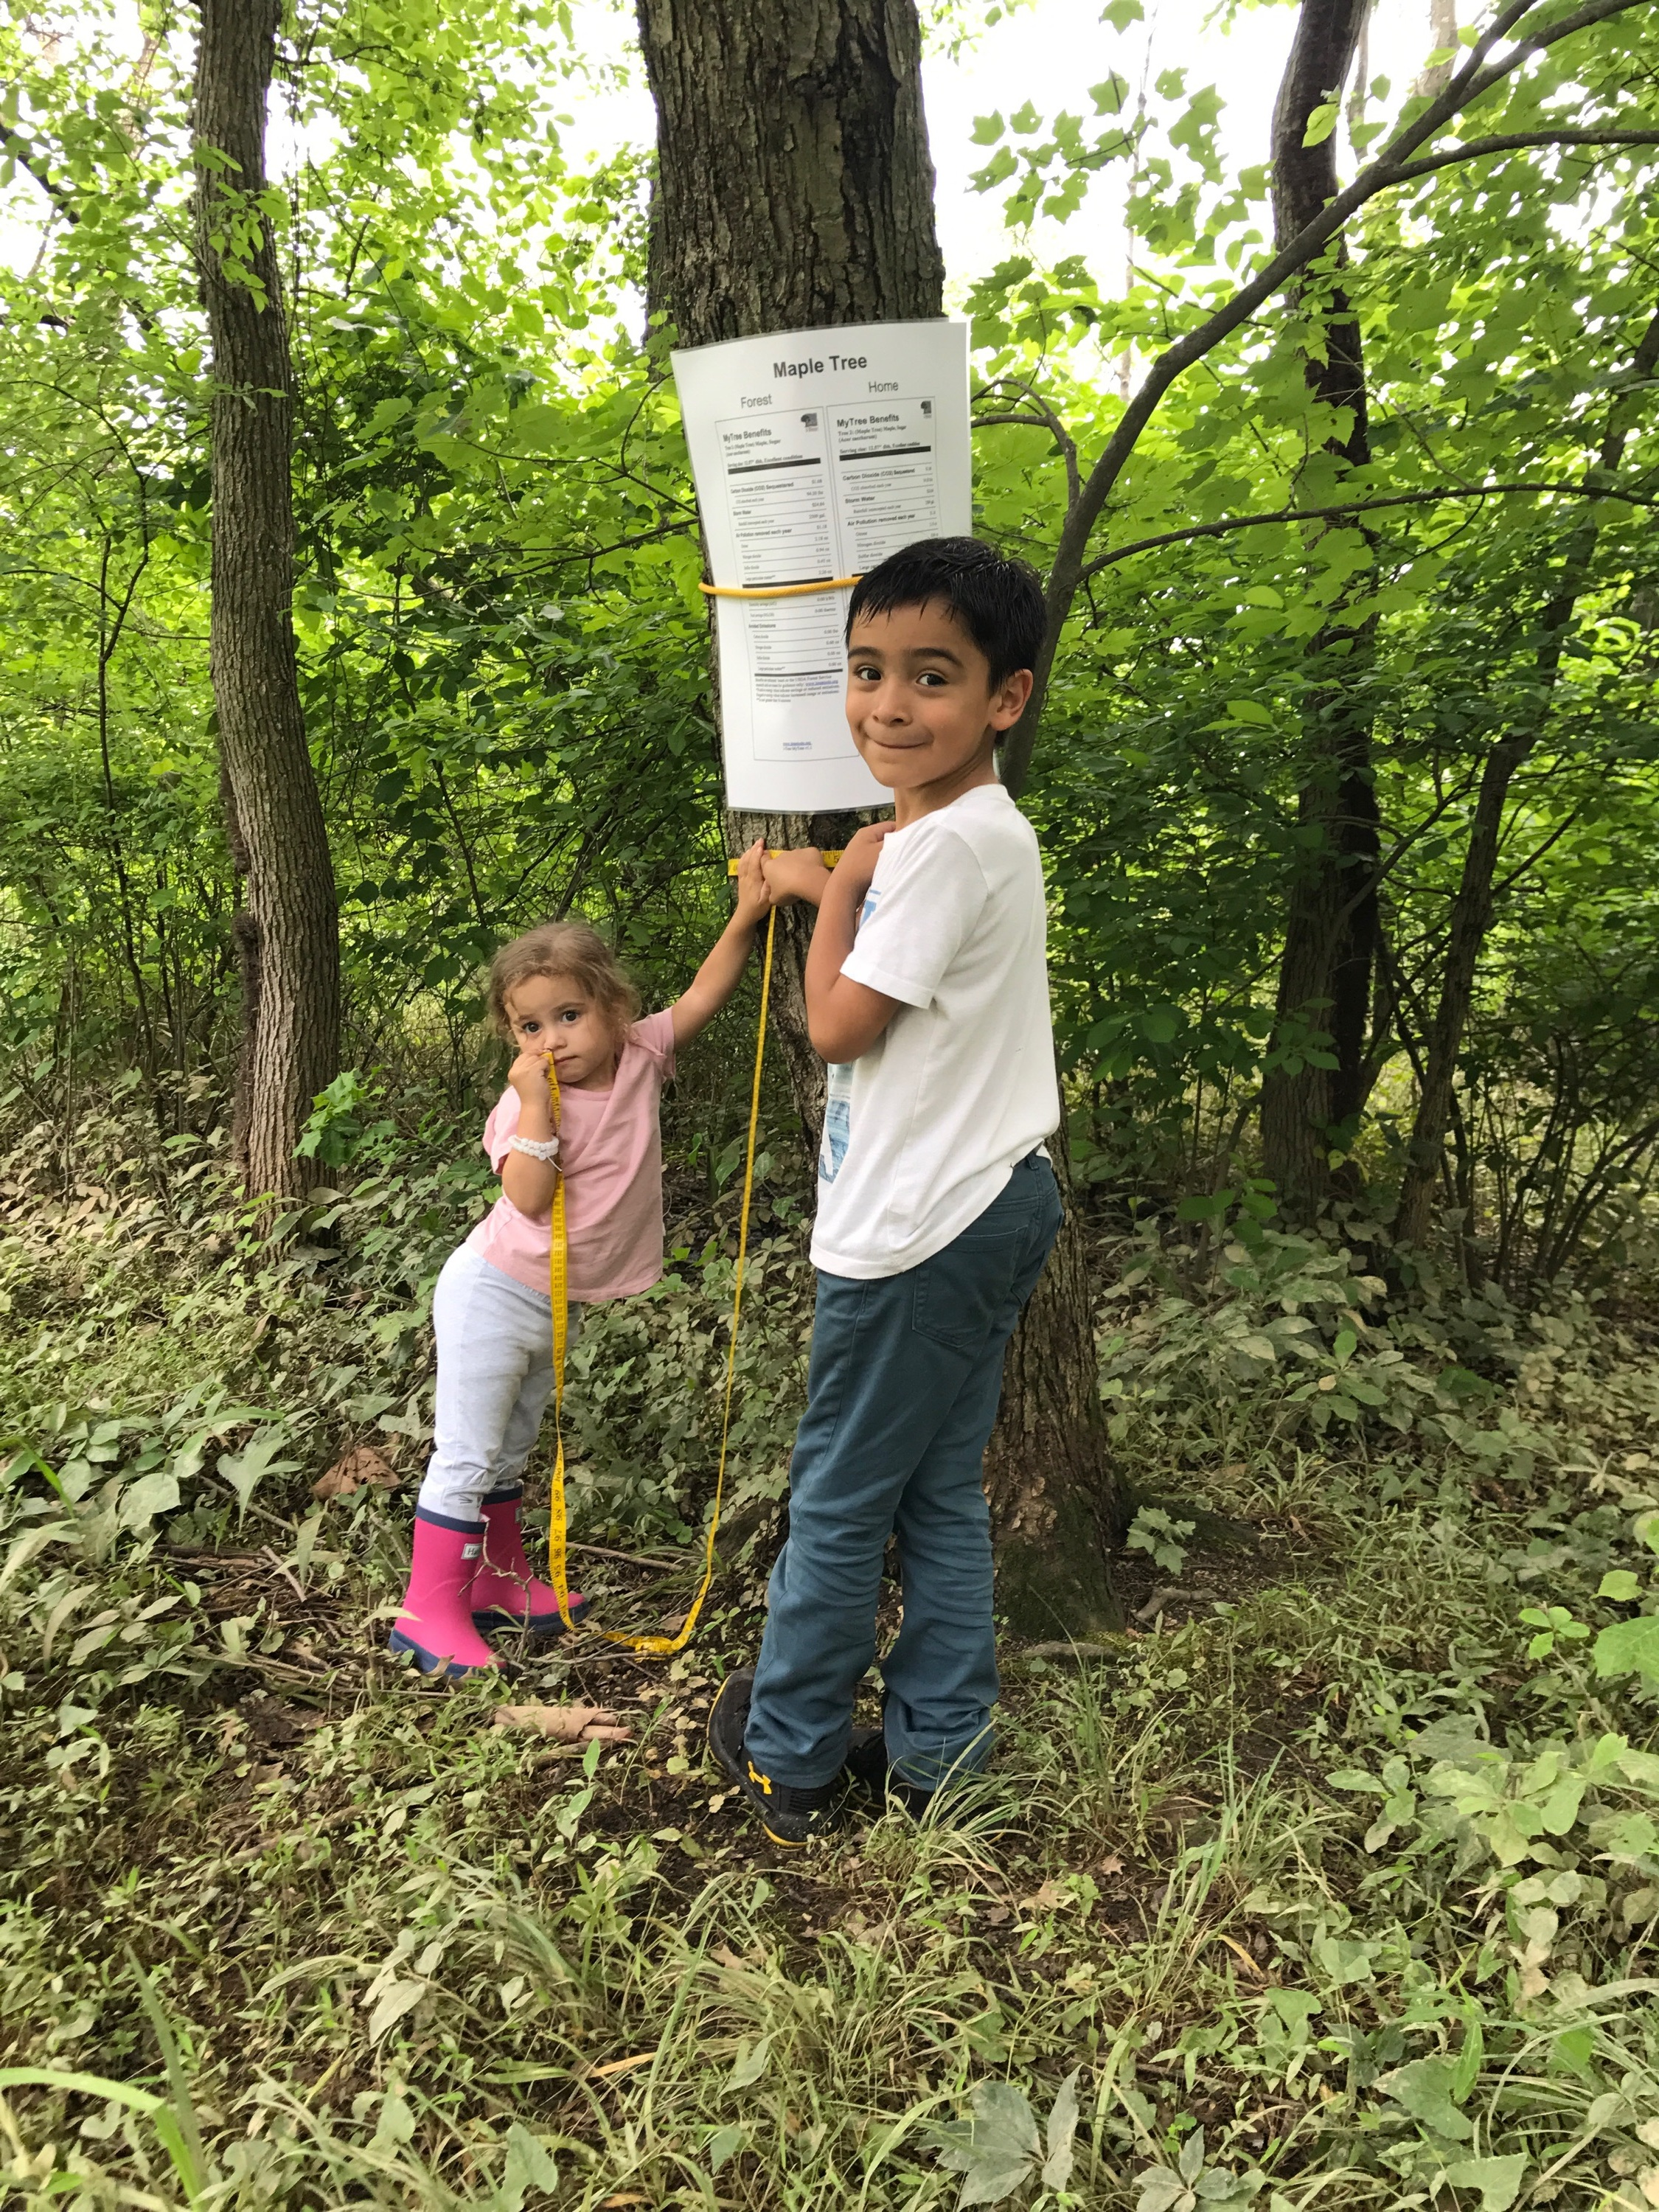 A couple of scientists-in-the-making measuring the circumference of a Sugar Maple.